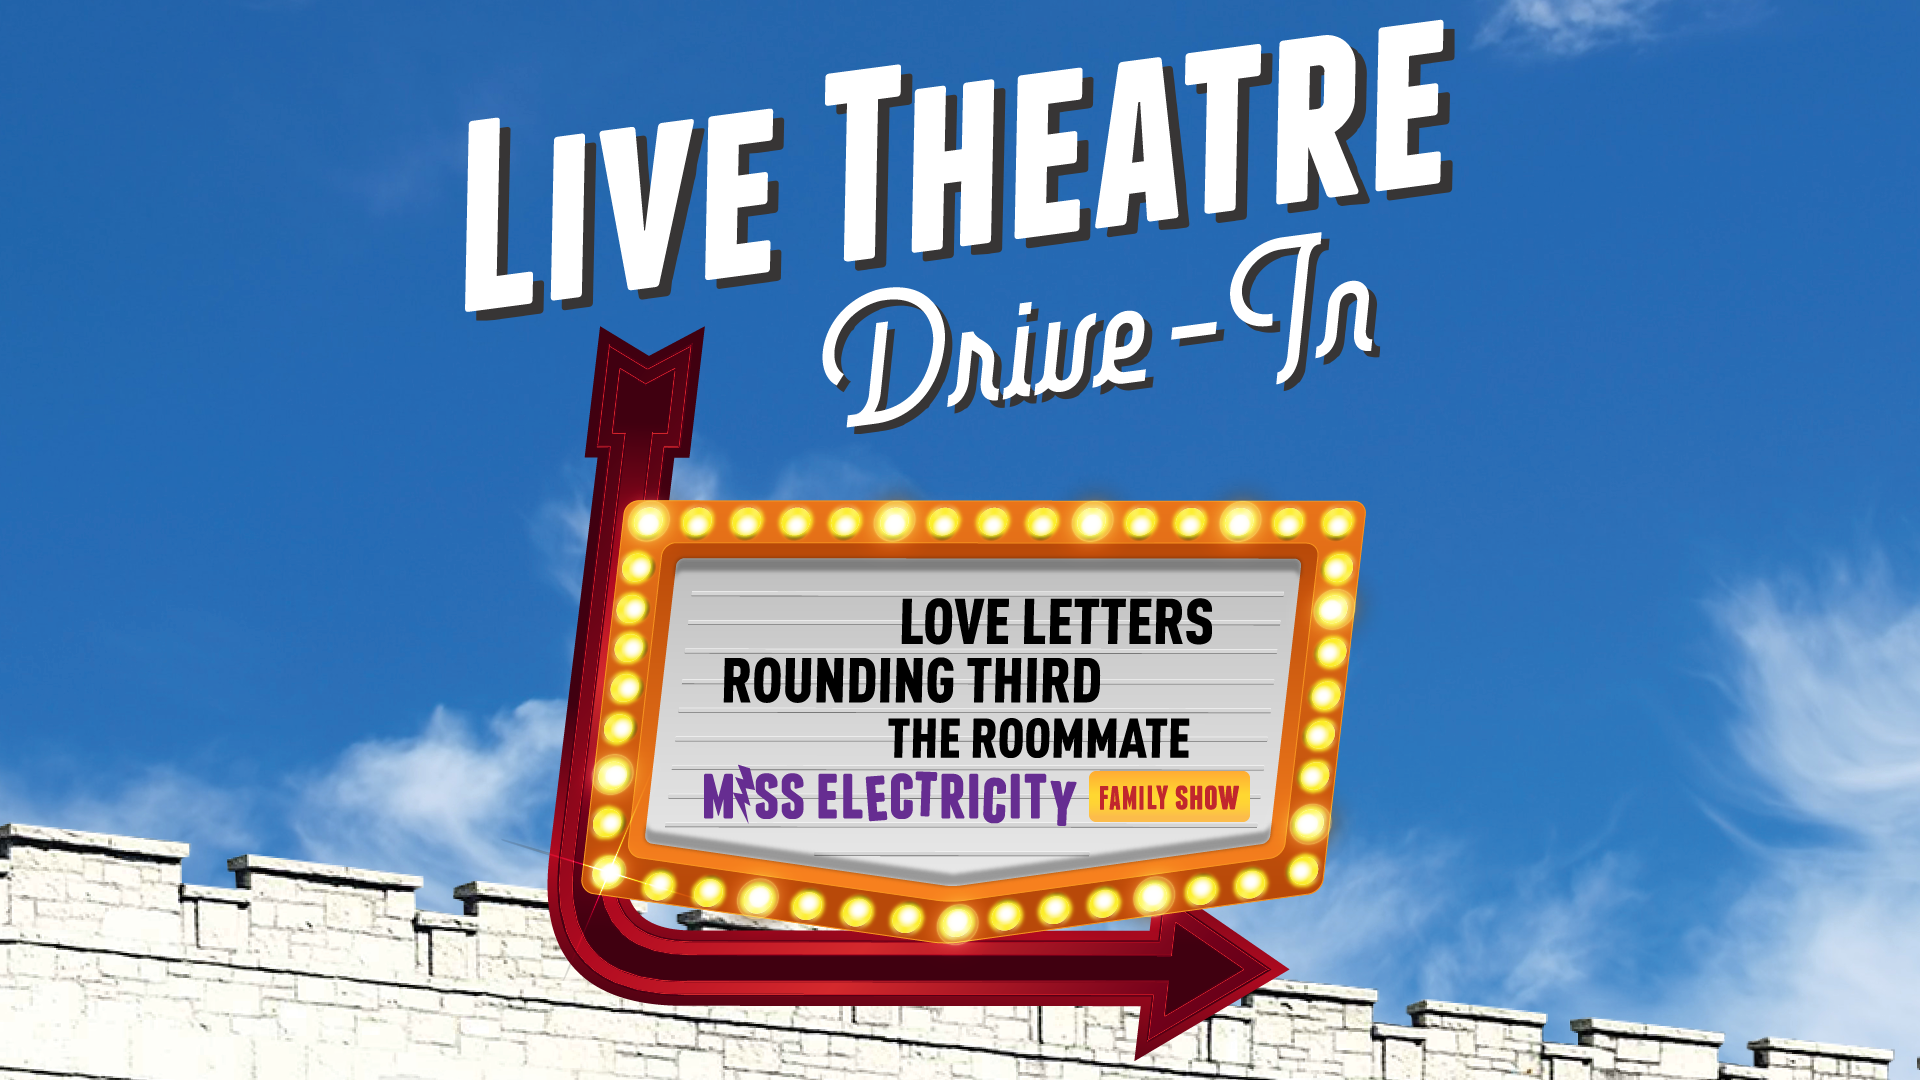 Live Theatre Drive In Des Moines Playhouse